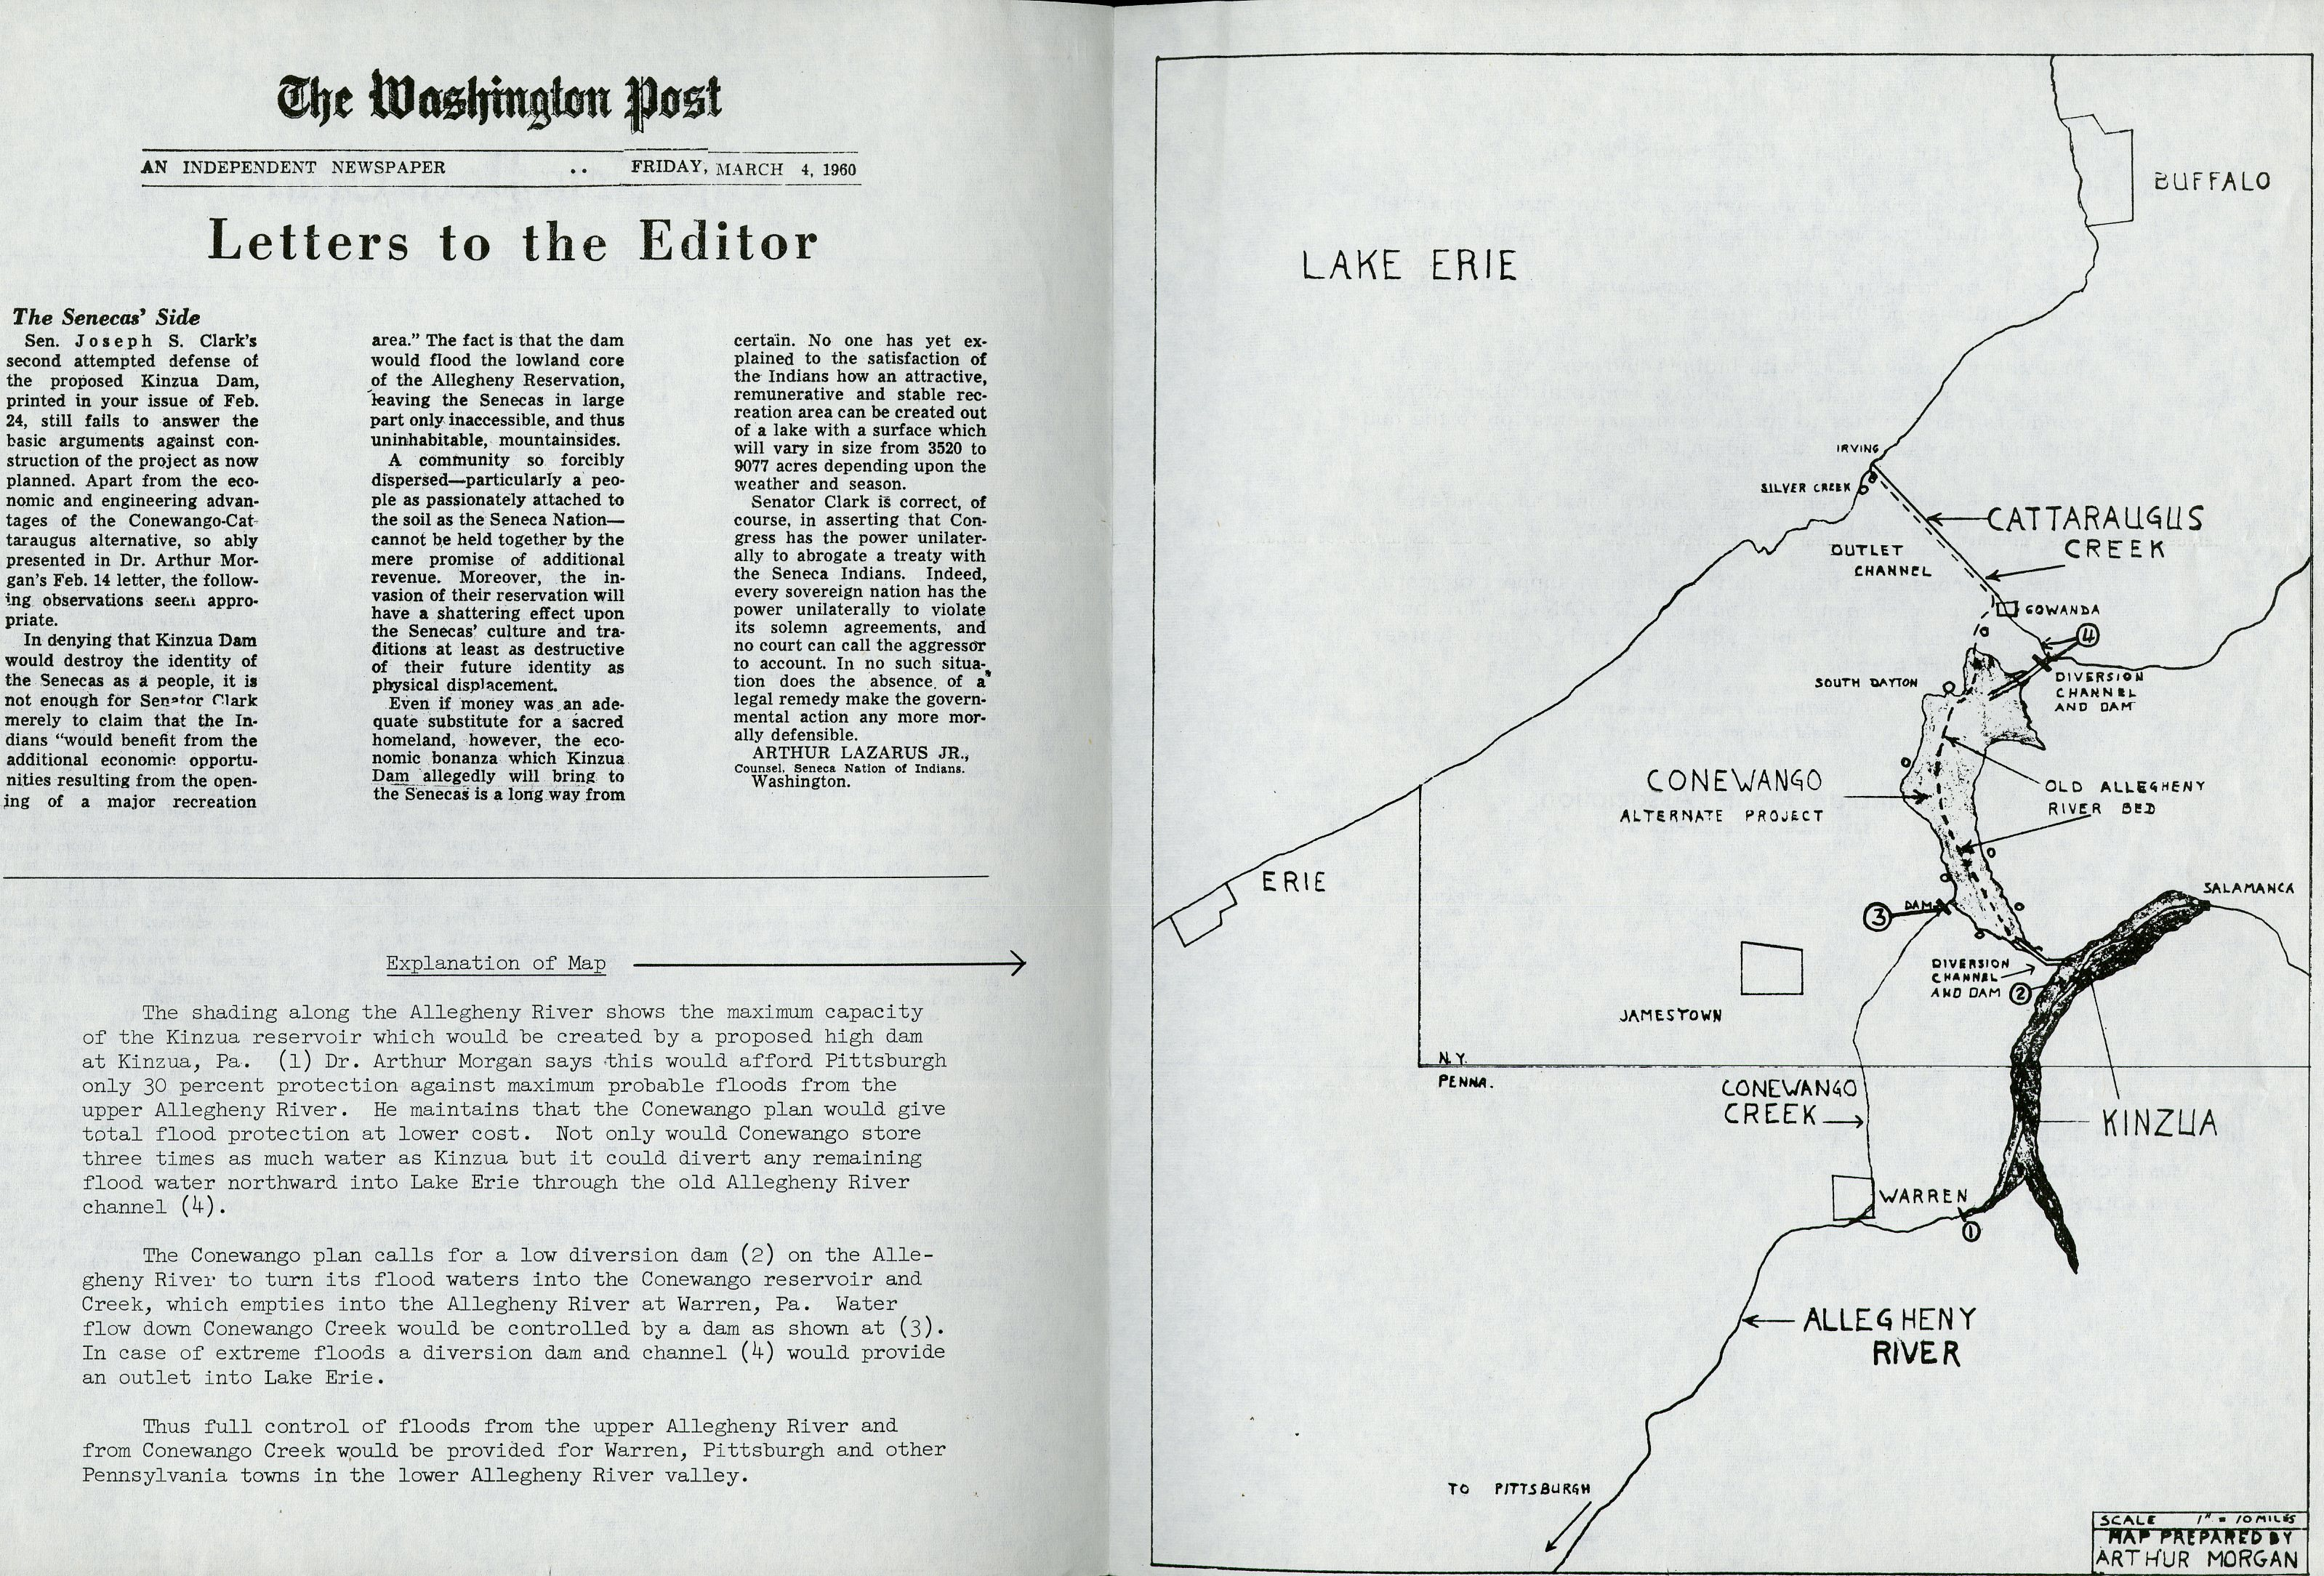 new york times letter to the times the washington post letters to the editor and map